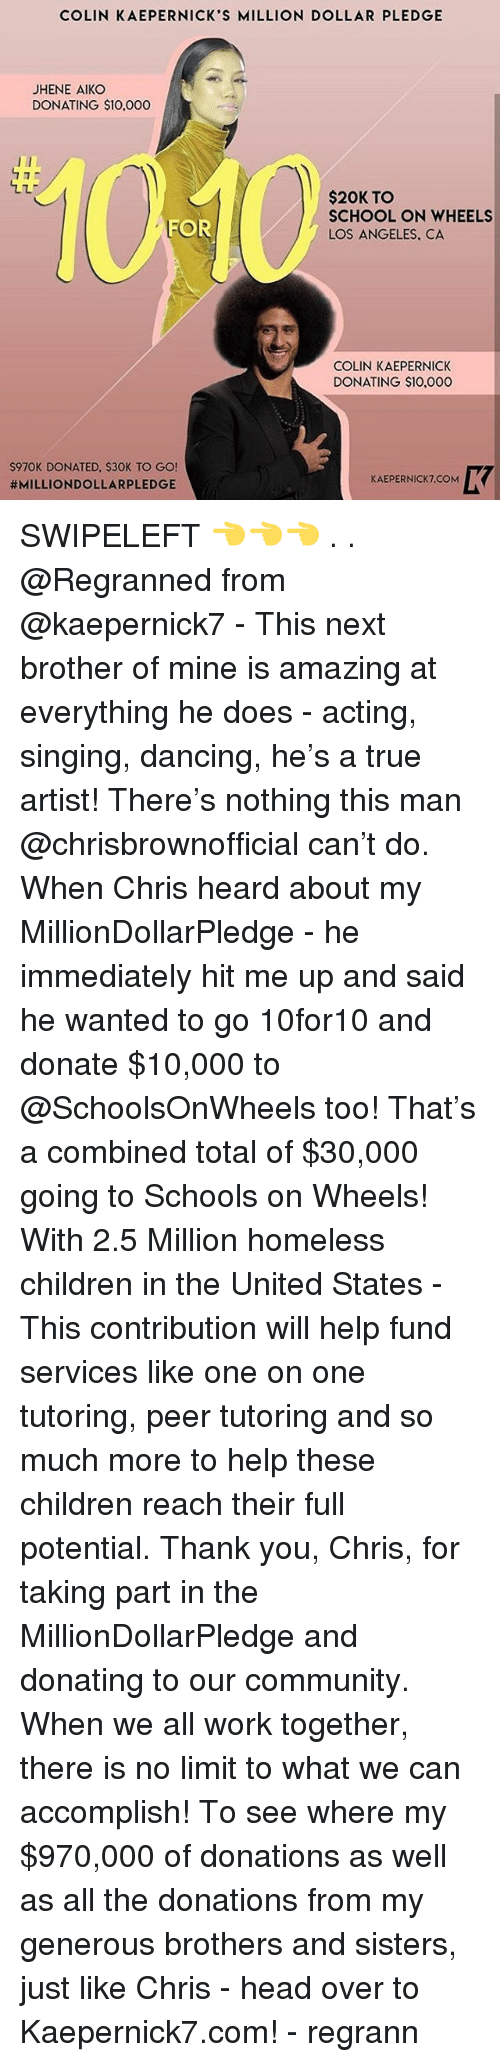 Children, Colin Kaepernick, and Community: COLIN KAEPERNICK'S MILLION DOLLAR PLEDGE  JHENE AIKO  DONATING $10,000  $20K TO  SCHOOL ON WHEELS  LOS ANGELES, CA  FOR  COLIN KAEPERNICK  DONATING $10,000  $970K DONATED, S30K TO GO  #MILLIONDOLLARPLEDGE  KAEPERNICK7.COM SWIPELEFT 👈👈👈 . . @Regranned from @kaepernick7 - This next brother of mine is amazing at everything he does - acting, singing, dancing, he's a true artist! There's nothing this man @chrisbrownofficial can't do. When Chris heard about my MillionDollarPledge - he immediately hit me up and said he wanted to go 10for10 and donate $10,000 to @SchoolsOnWheels too! That's a combined total of $30,000 going to Schools on Wheels! With 2.5 Million homeless children in the United States - This contribution will help fund services like one on one tutoring, peer tutoring and so much more to help these children reach their full potential. Thank you, Chris, for taking part in the MillionDollarPledge and donating to our community. When we all work together, there is no limit to what we can accomplish! To see where my $970,000 of donations as well as all the donations from my generous brothers and sisters, just like Chris - head over to Kaepernick7.com! - regrann